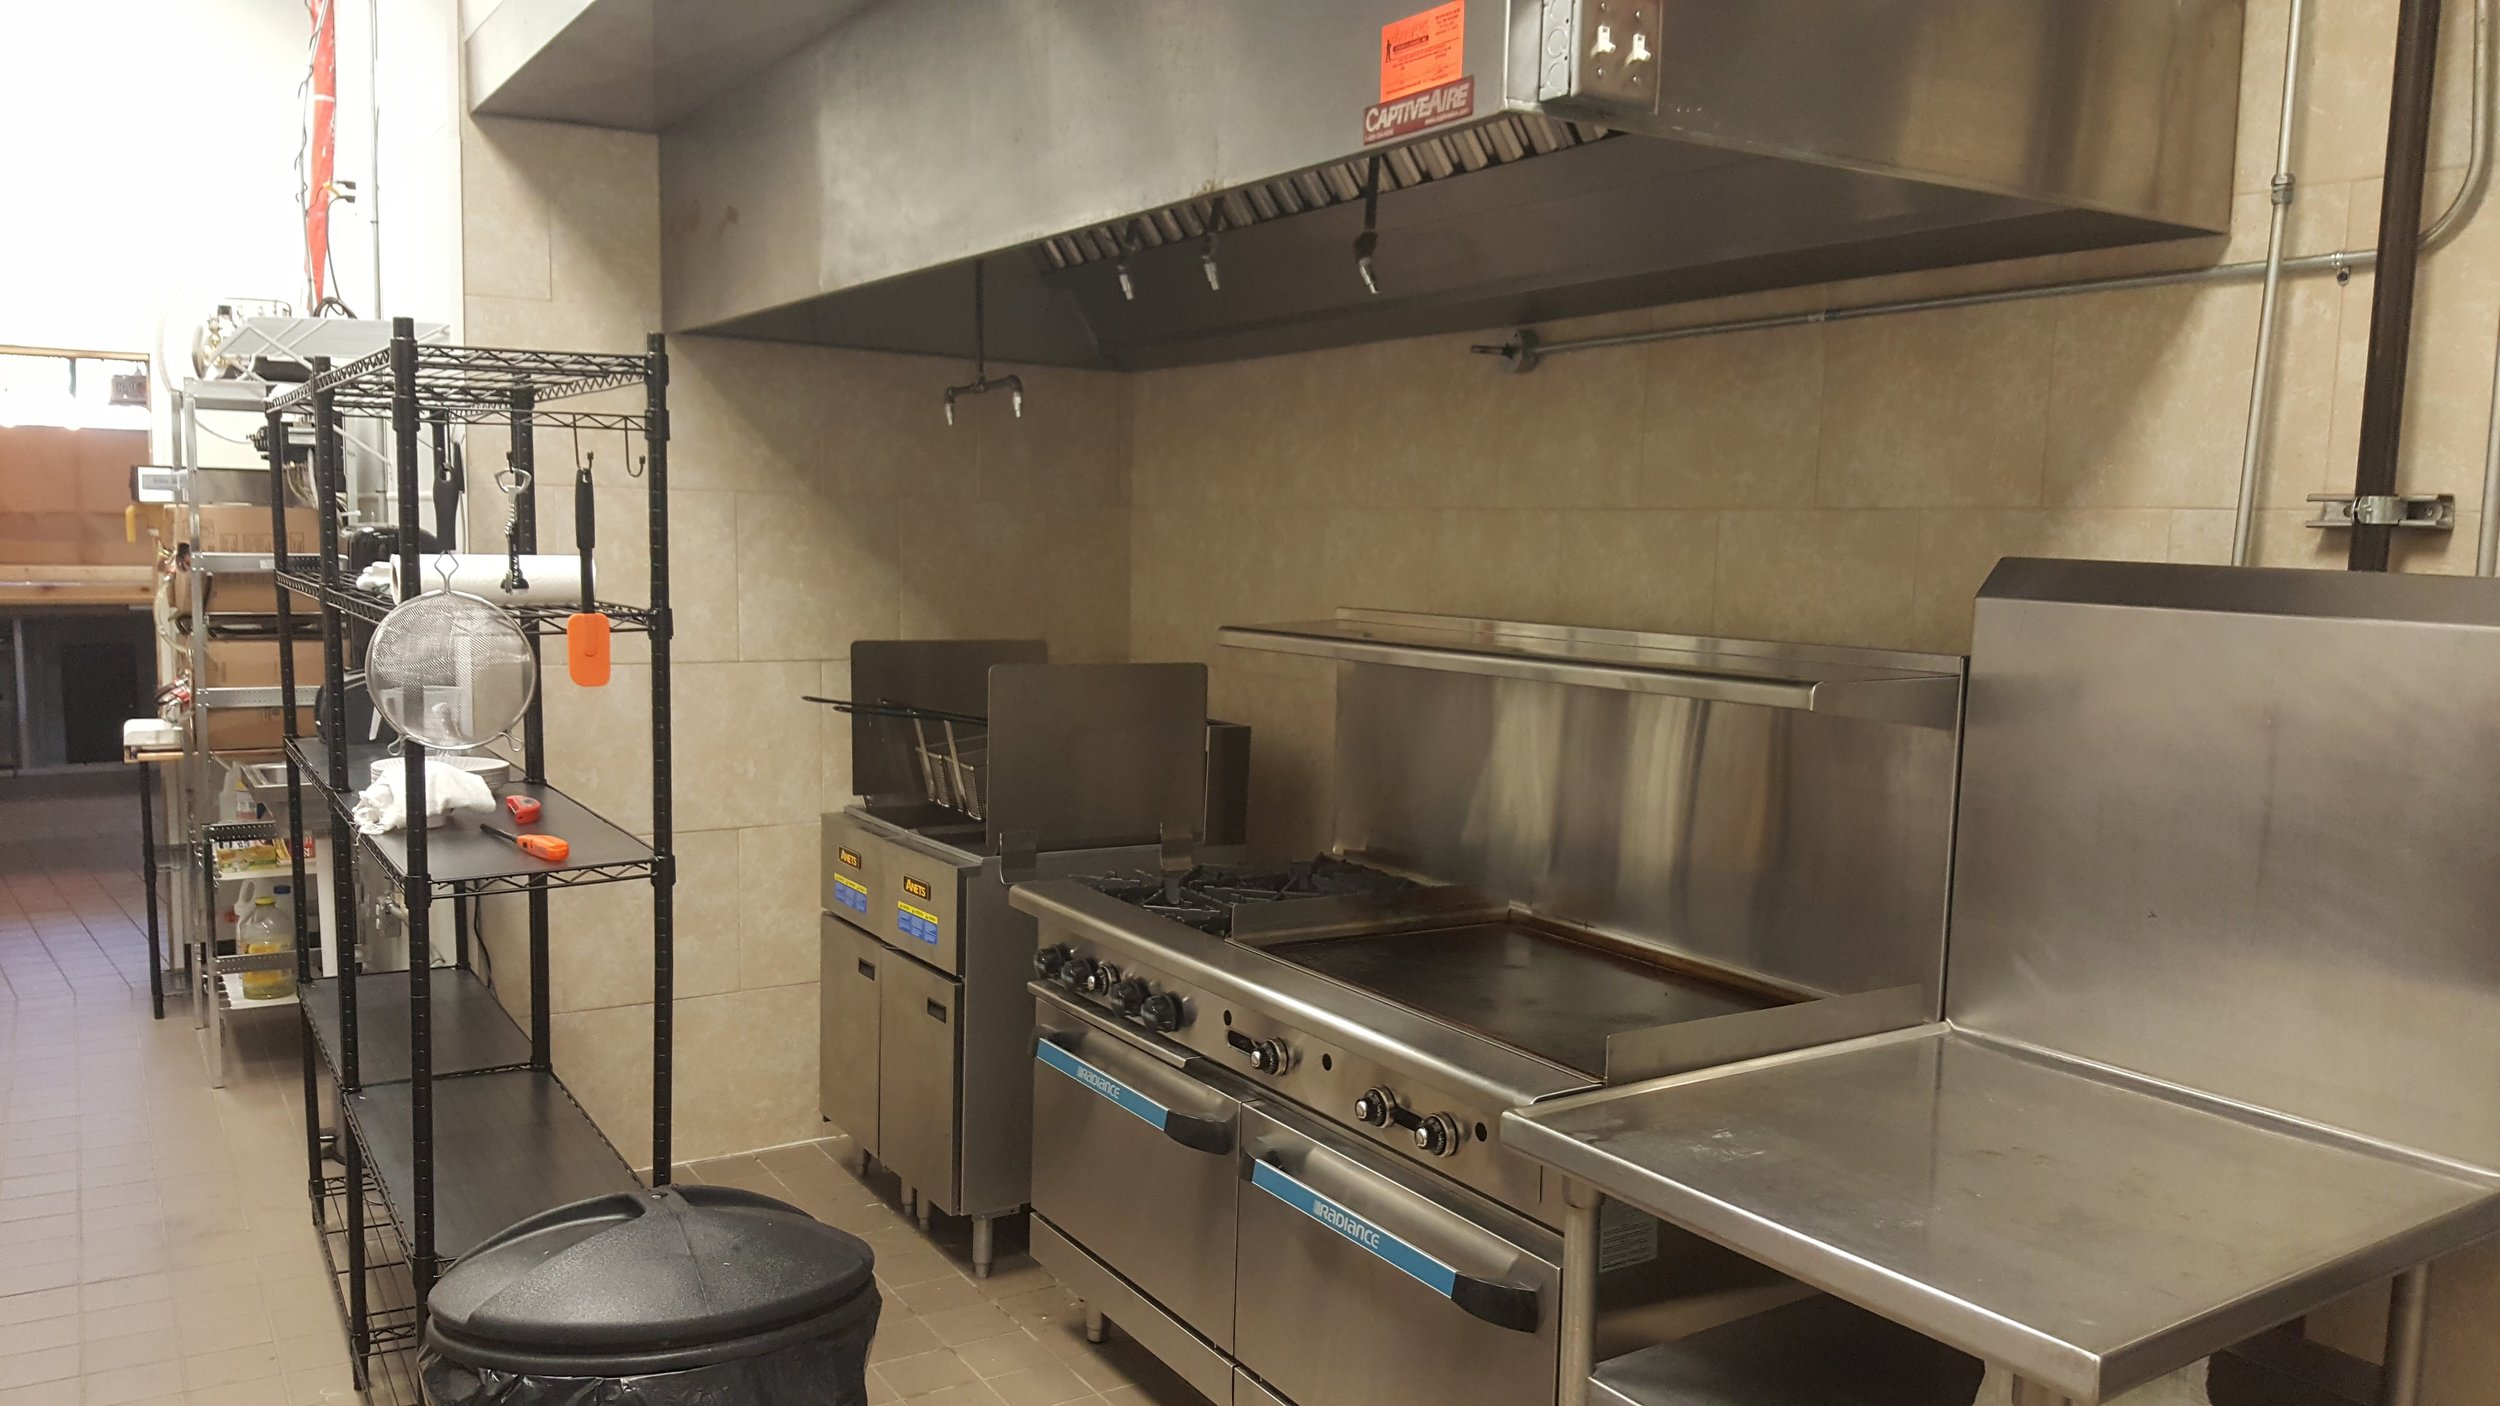 More appliances, under  our installed hood system.